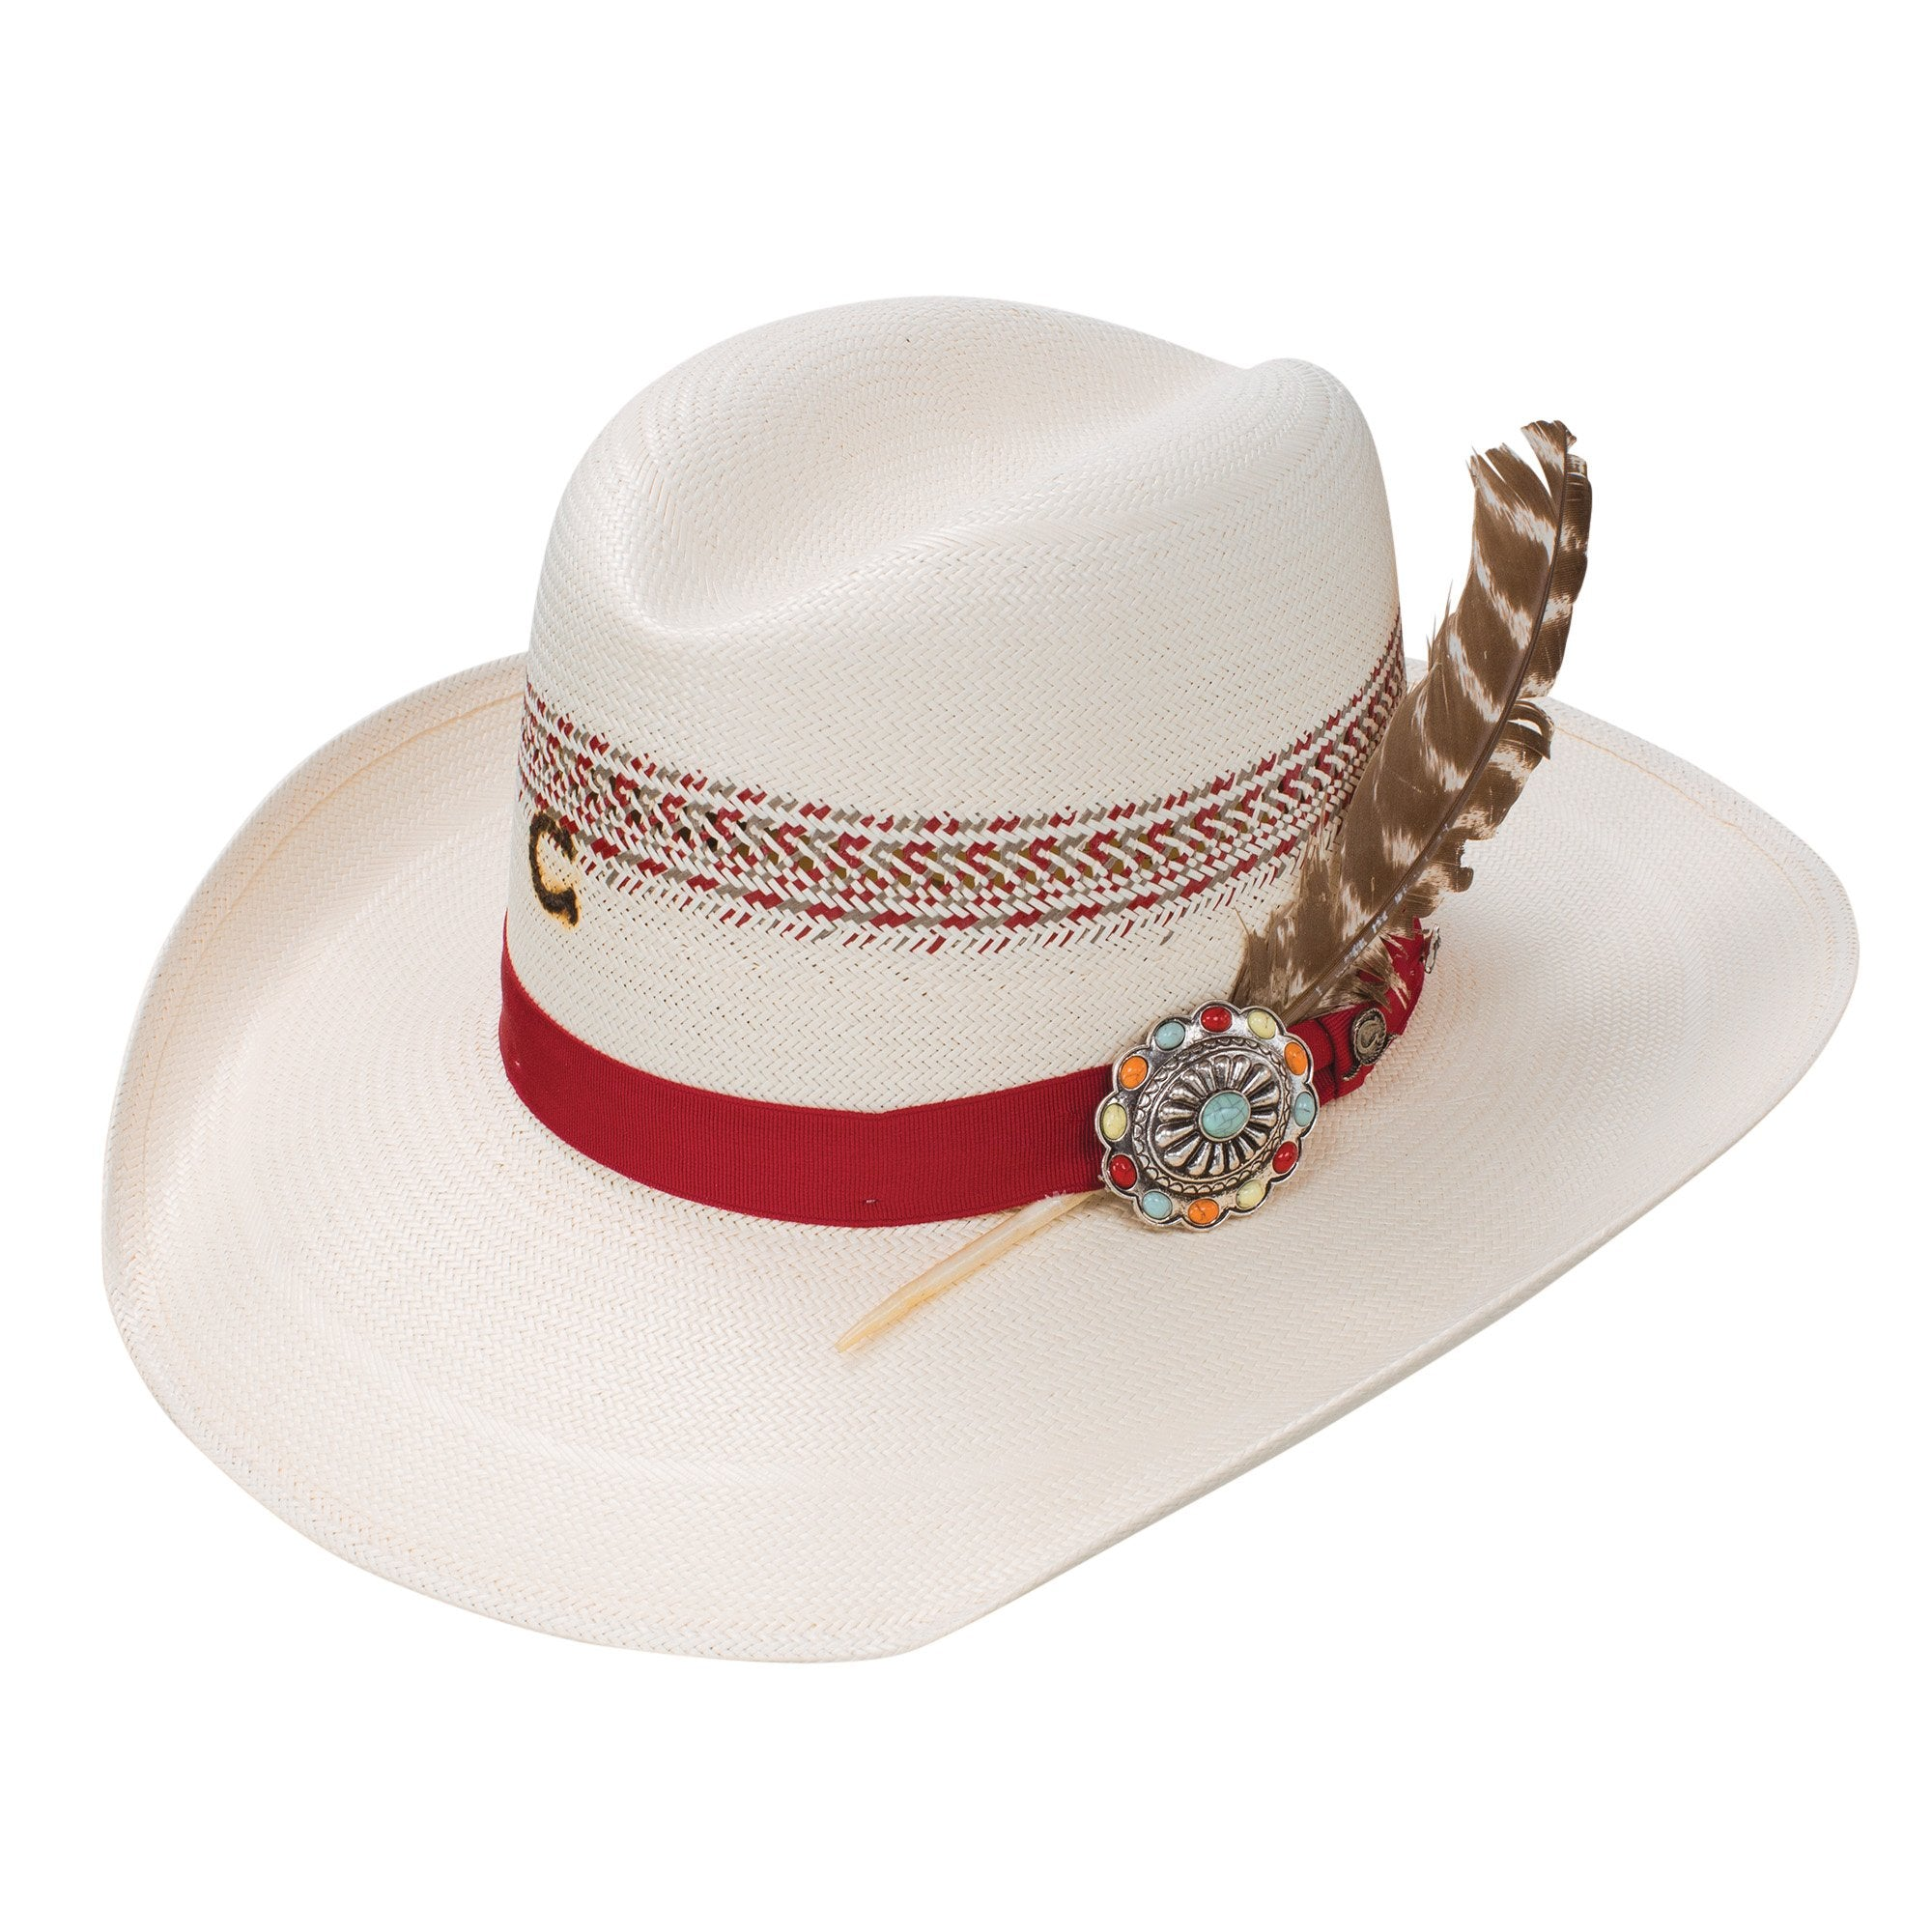 Charlie Horse Women's Stir Crazy Straw Hat